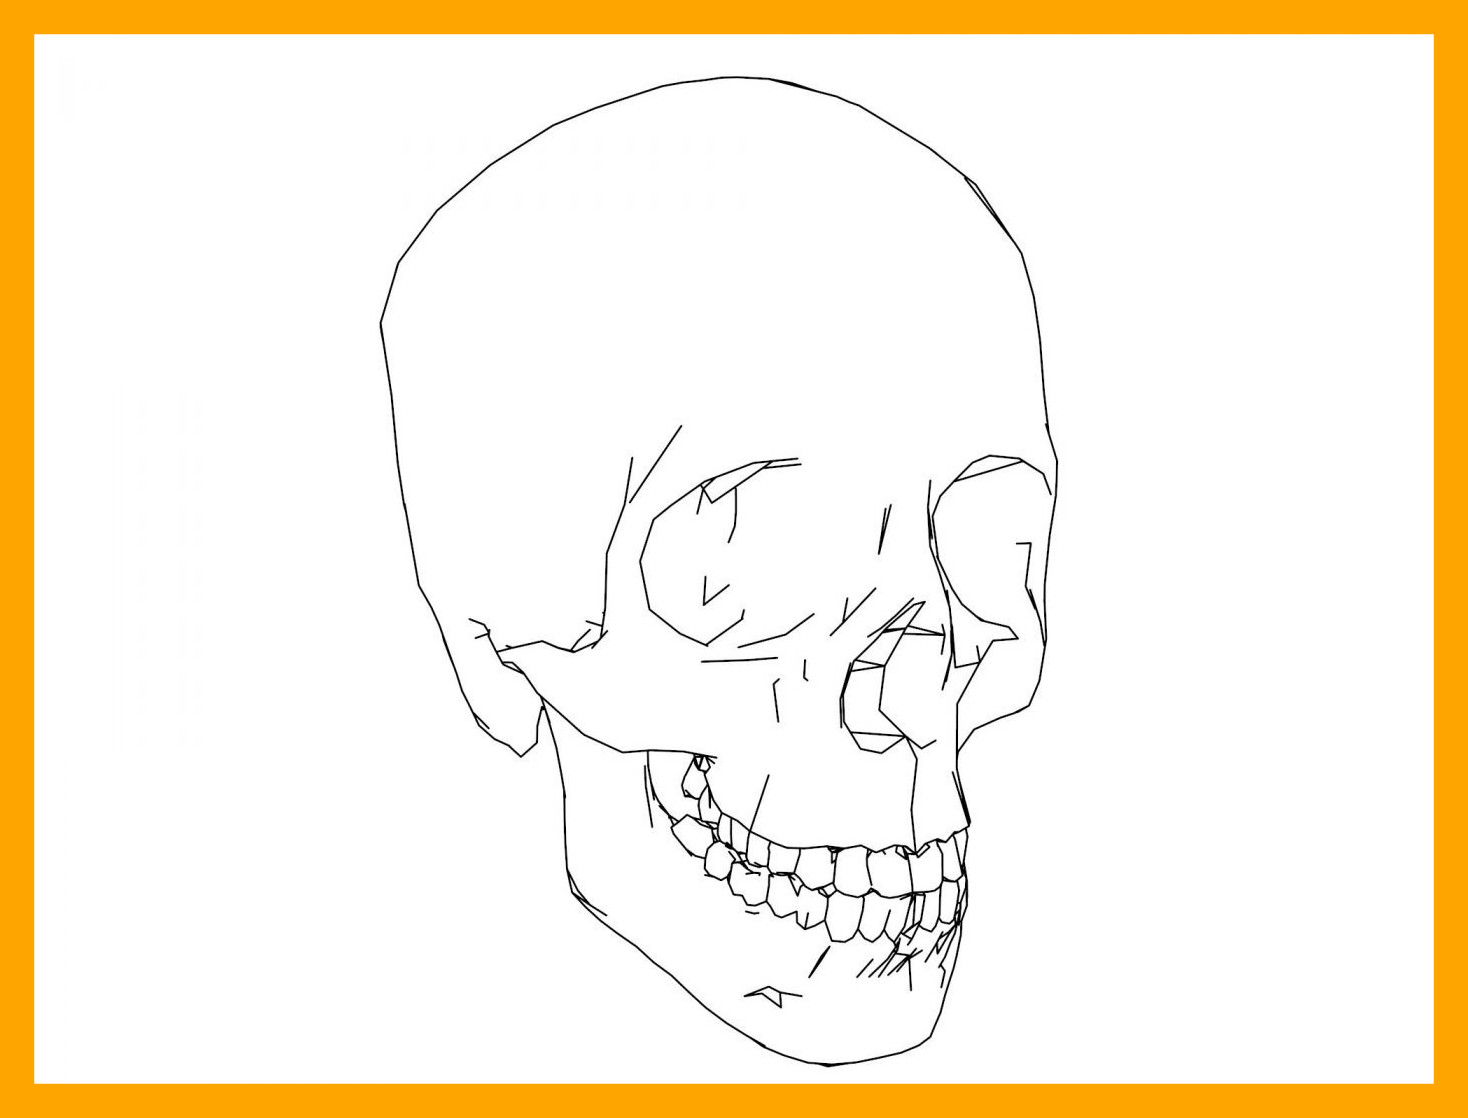 Skull anatomy coloring pages at getdrawings com free for personal